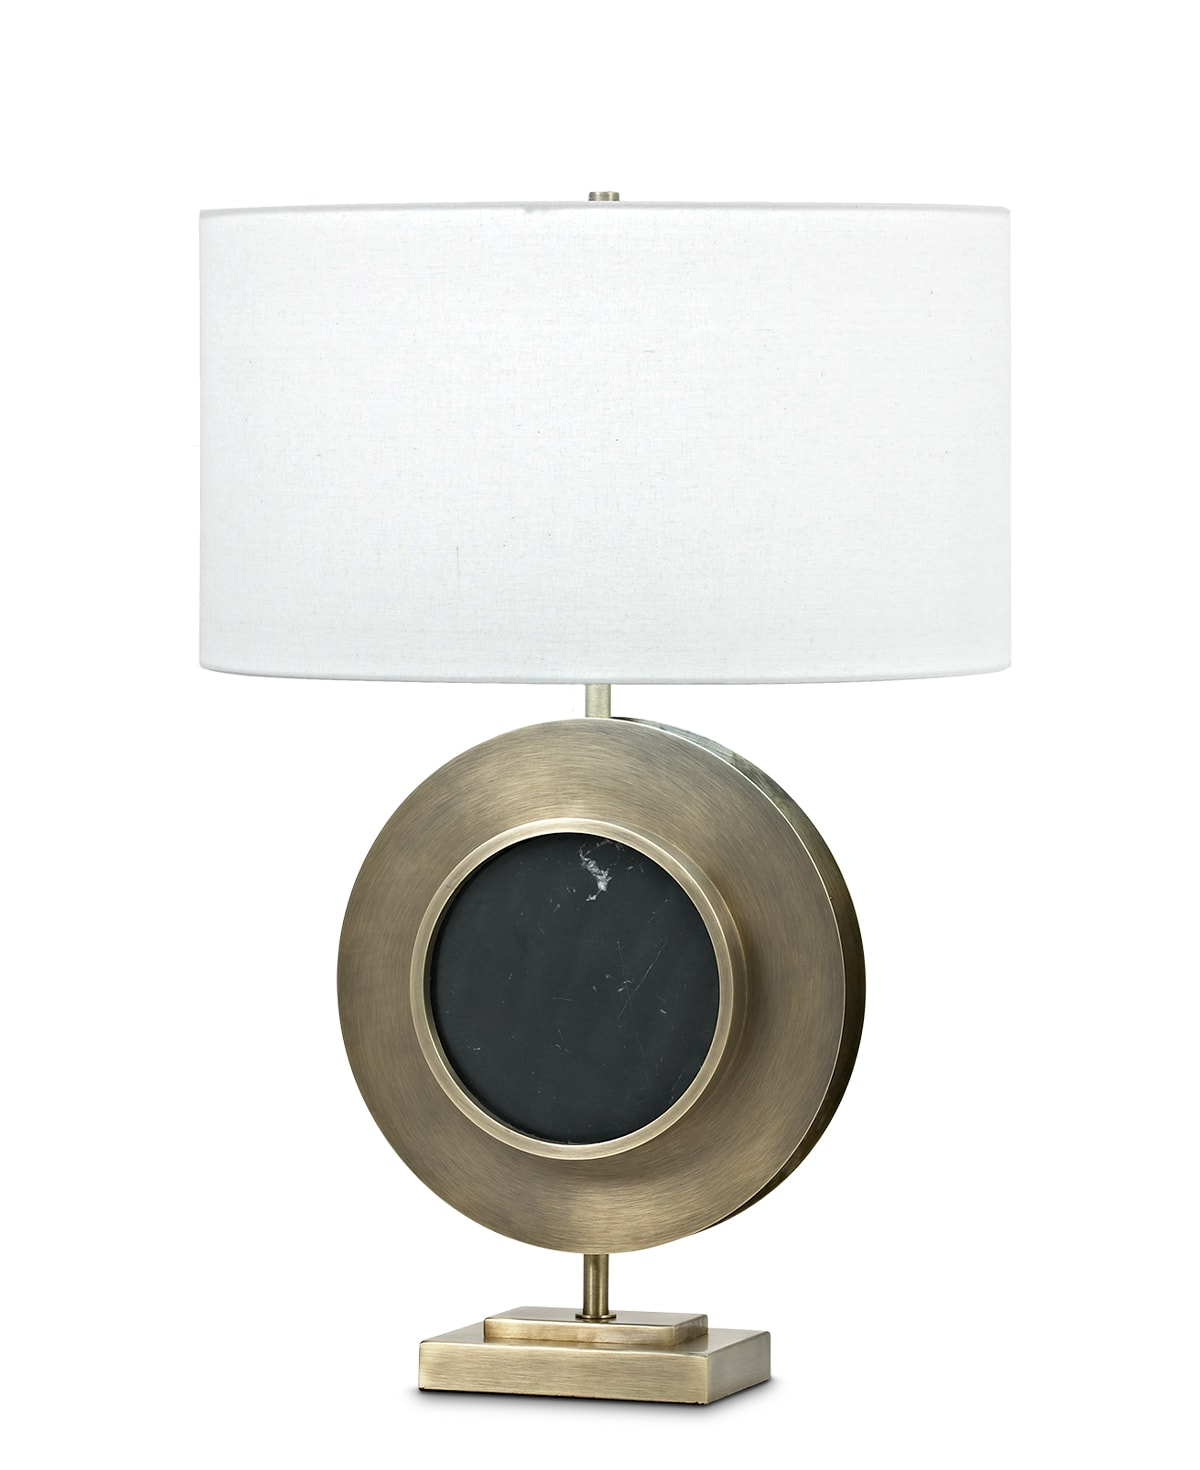 FlowDecor Turner Table Lamp in black marble and metal with antique brass finish and off-white linen oval shade (# 3813)